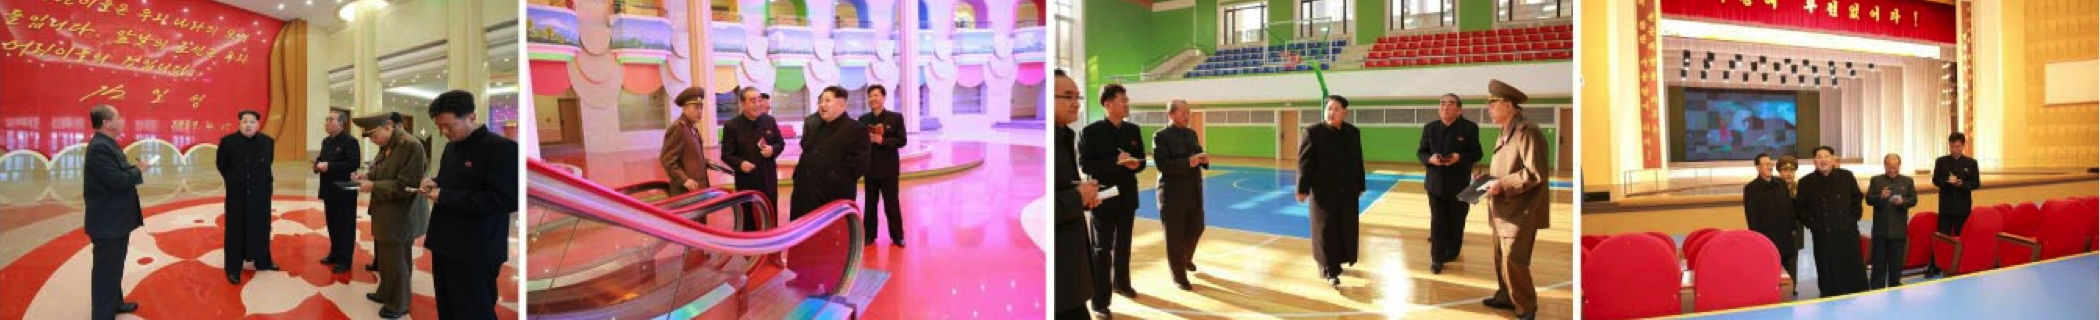 Kim Jong Un tours the renovated Mangyo'ngdae Schoolchildren's Palace (Photos: Rodong Sinmun/KCNA).